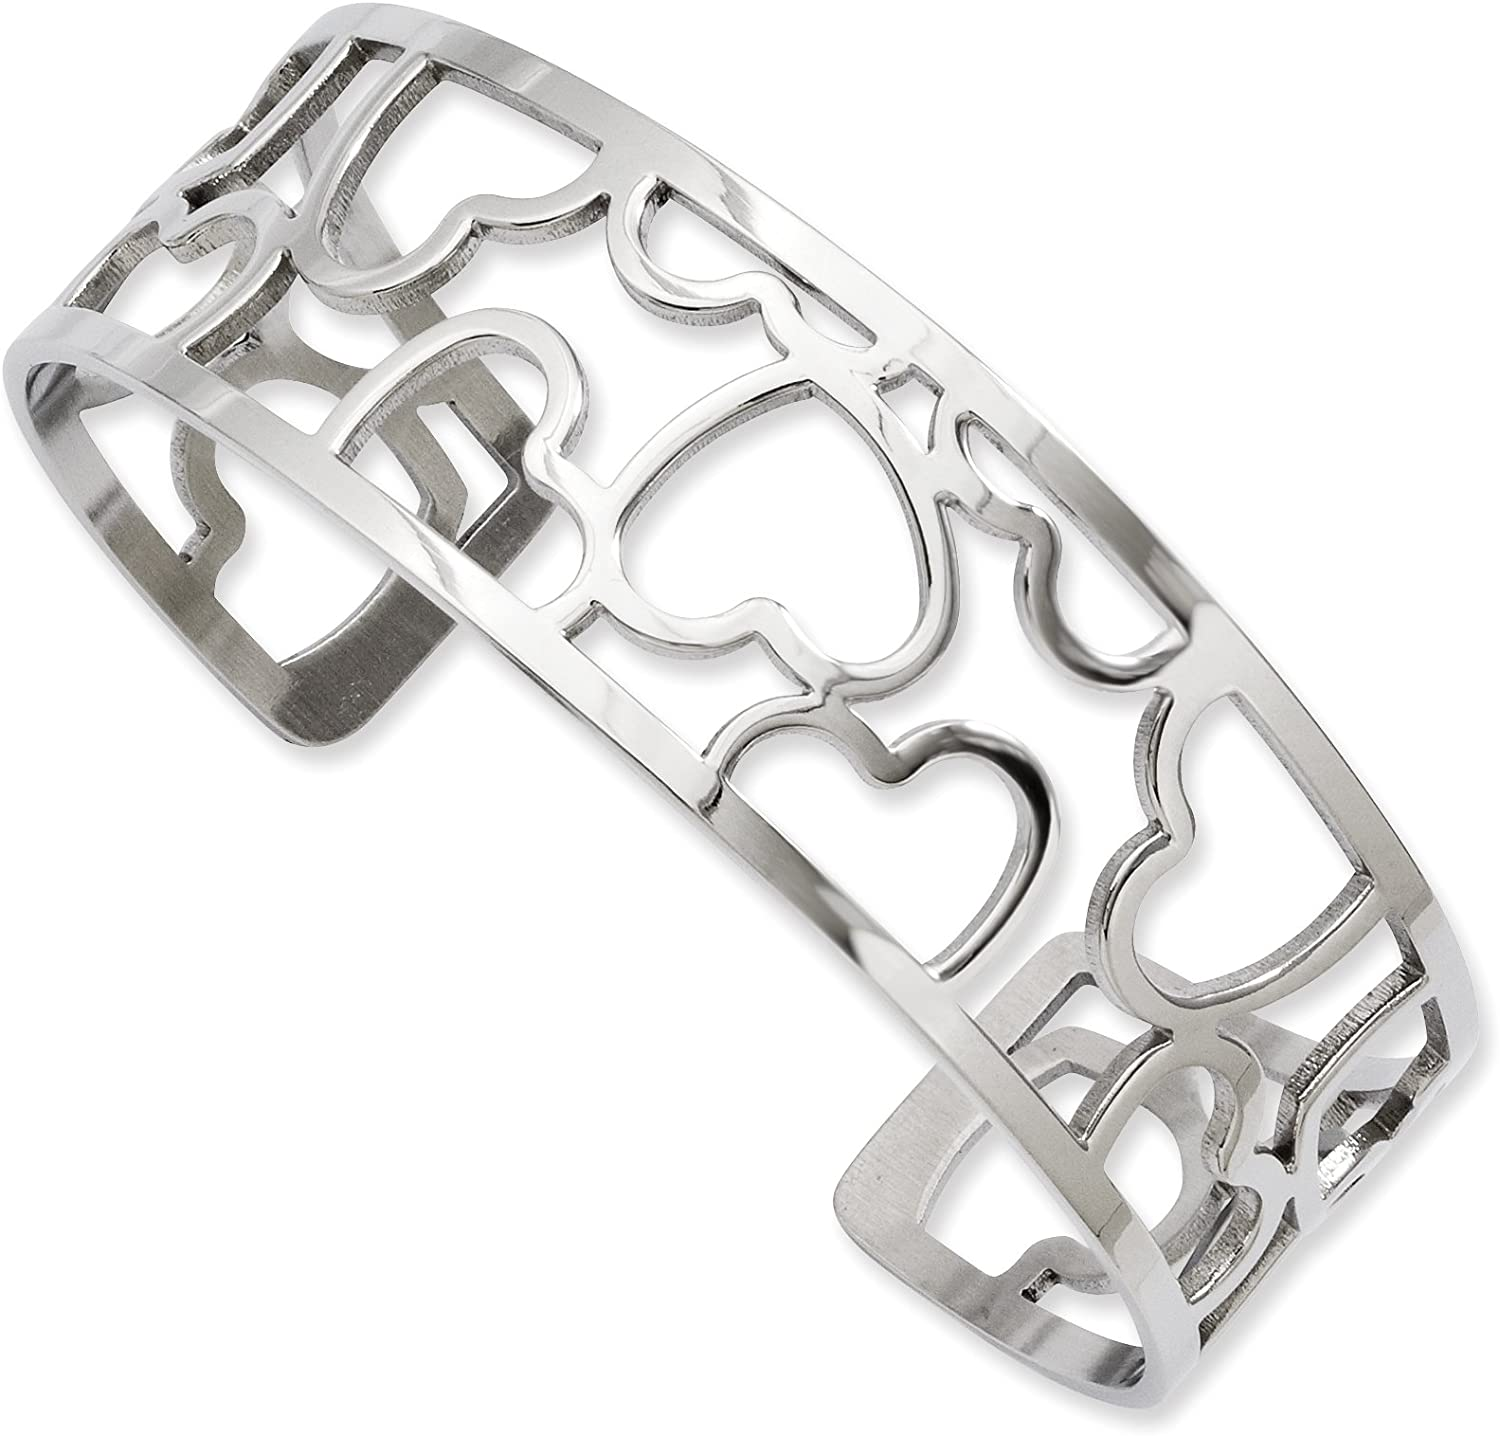 Stainless Steel Hearts Cuff Bangle